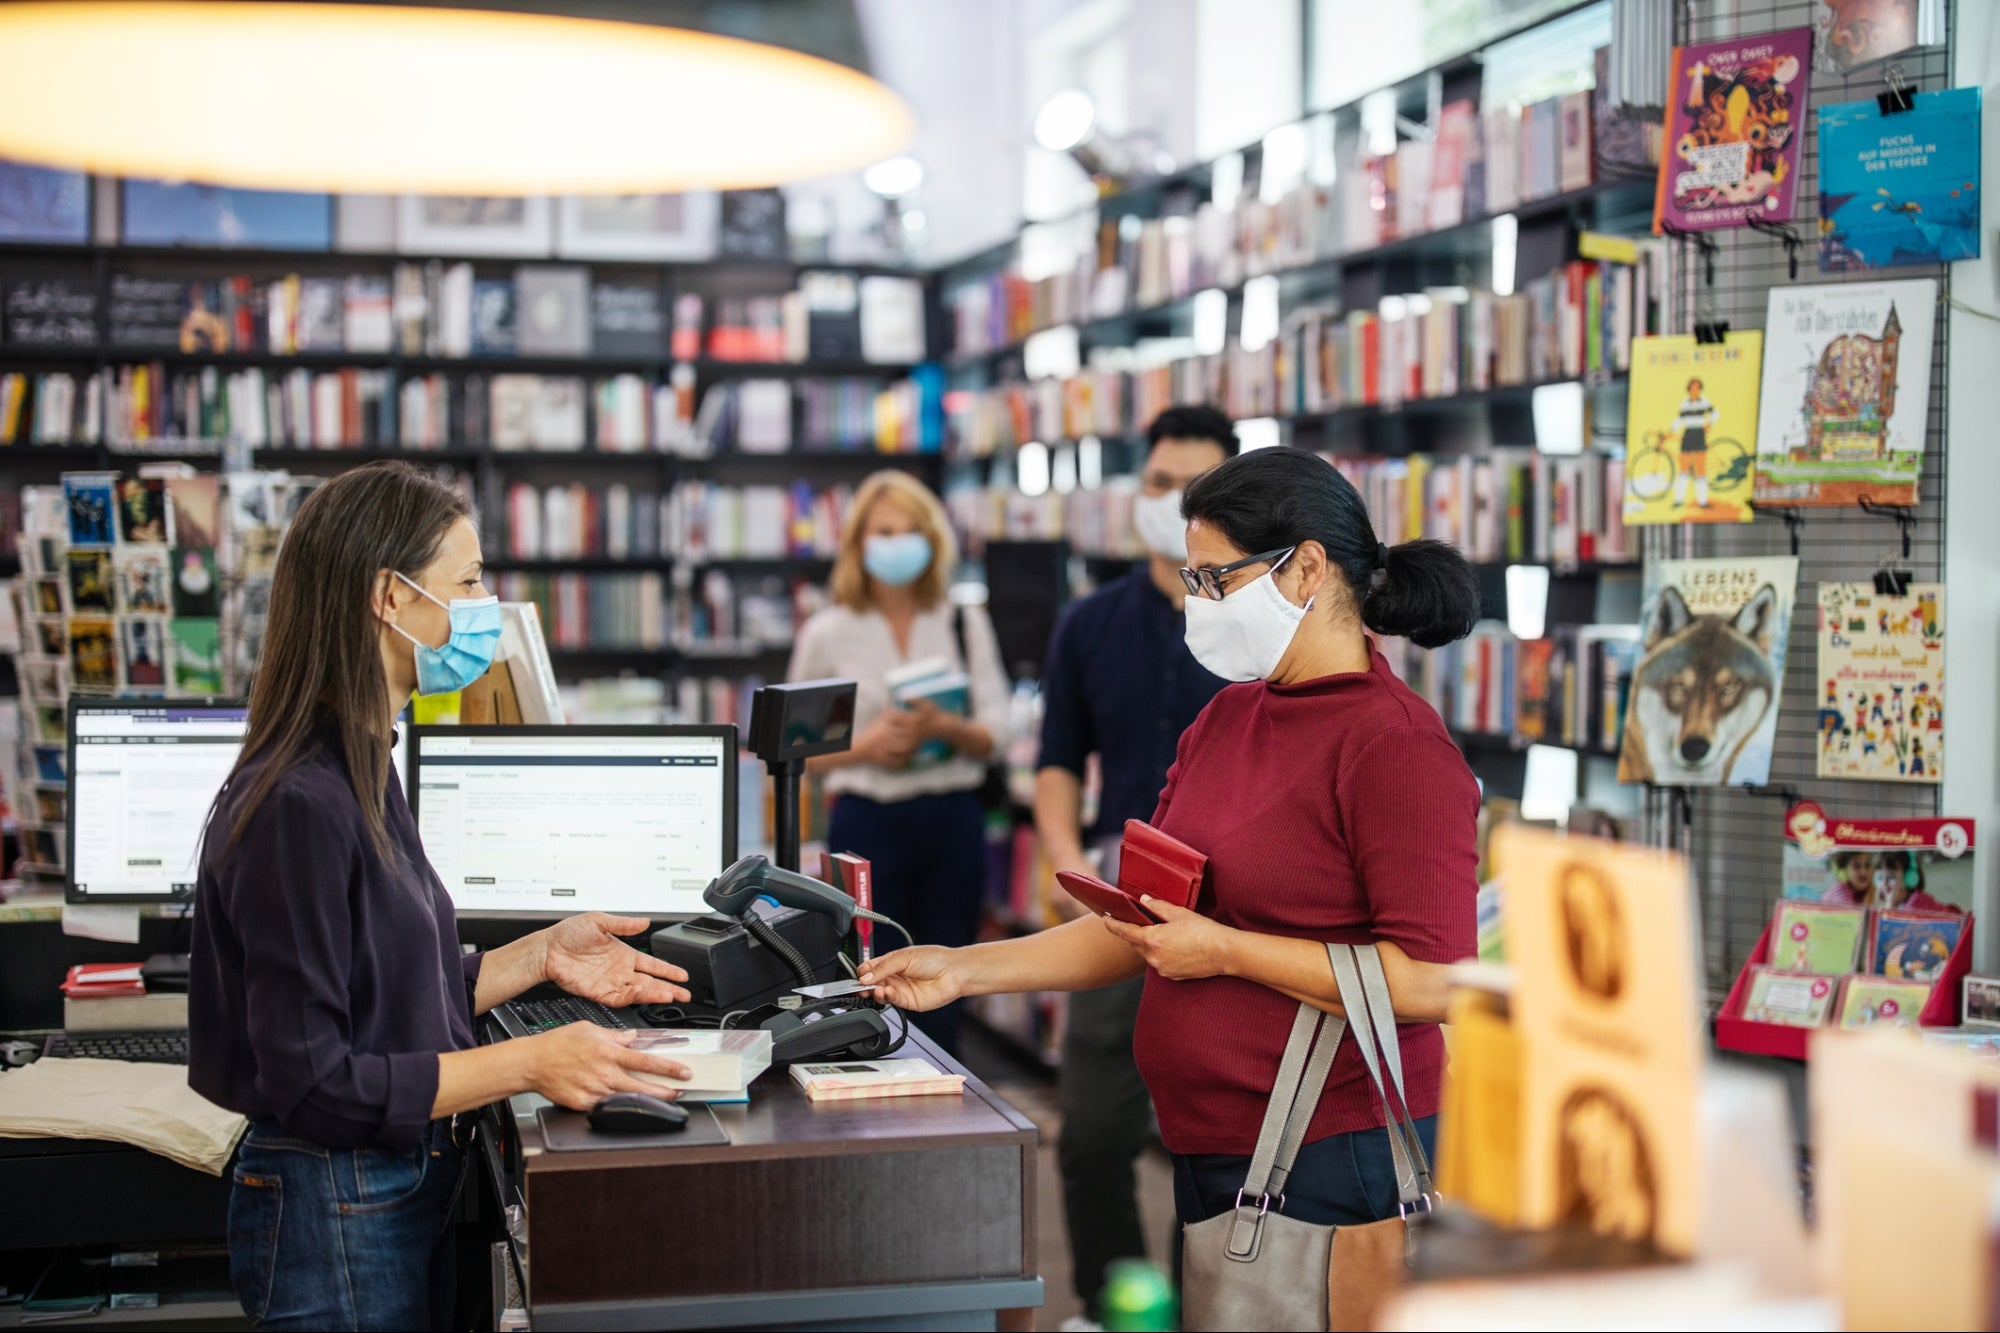 4 Digital Strategies for Small Businesses Recovering Post-Pandemic